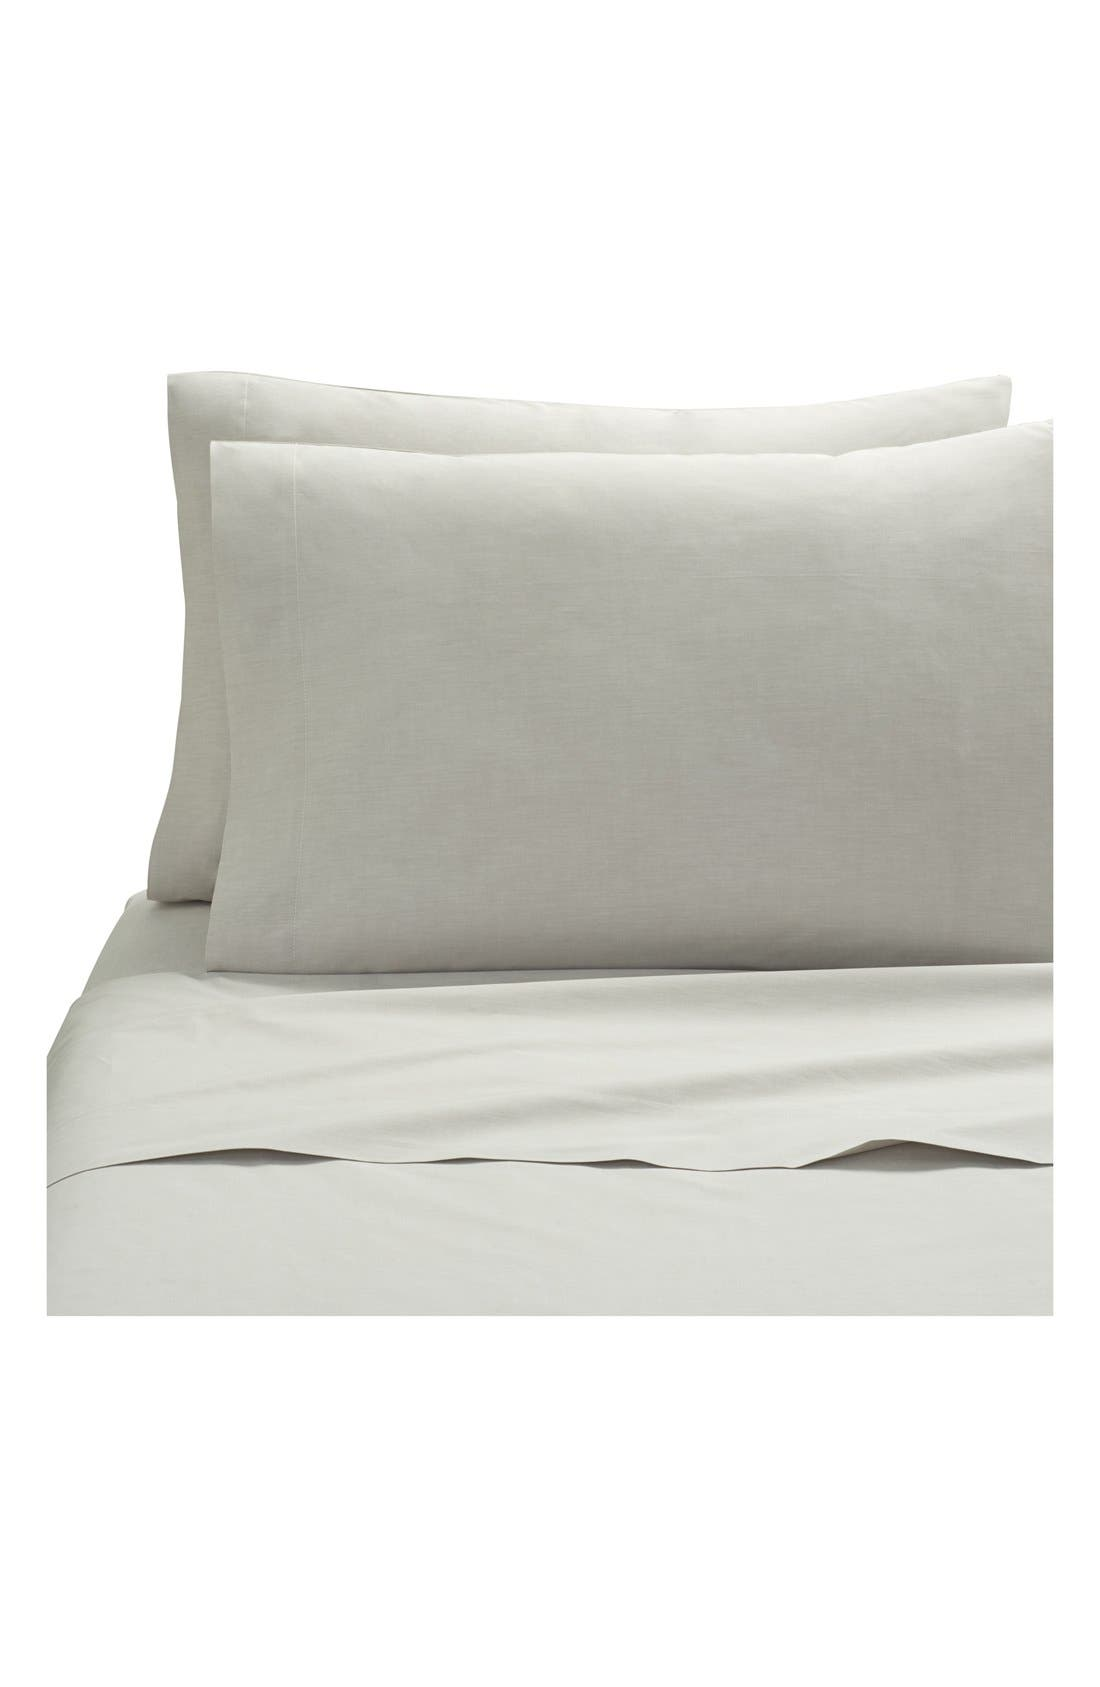 Main Image - KASSATEX Ascott Pillowcases